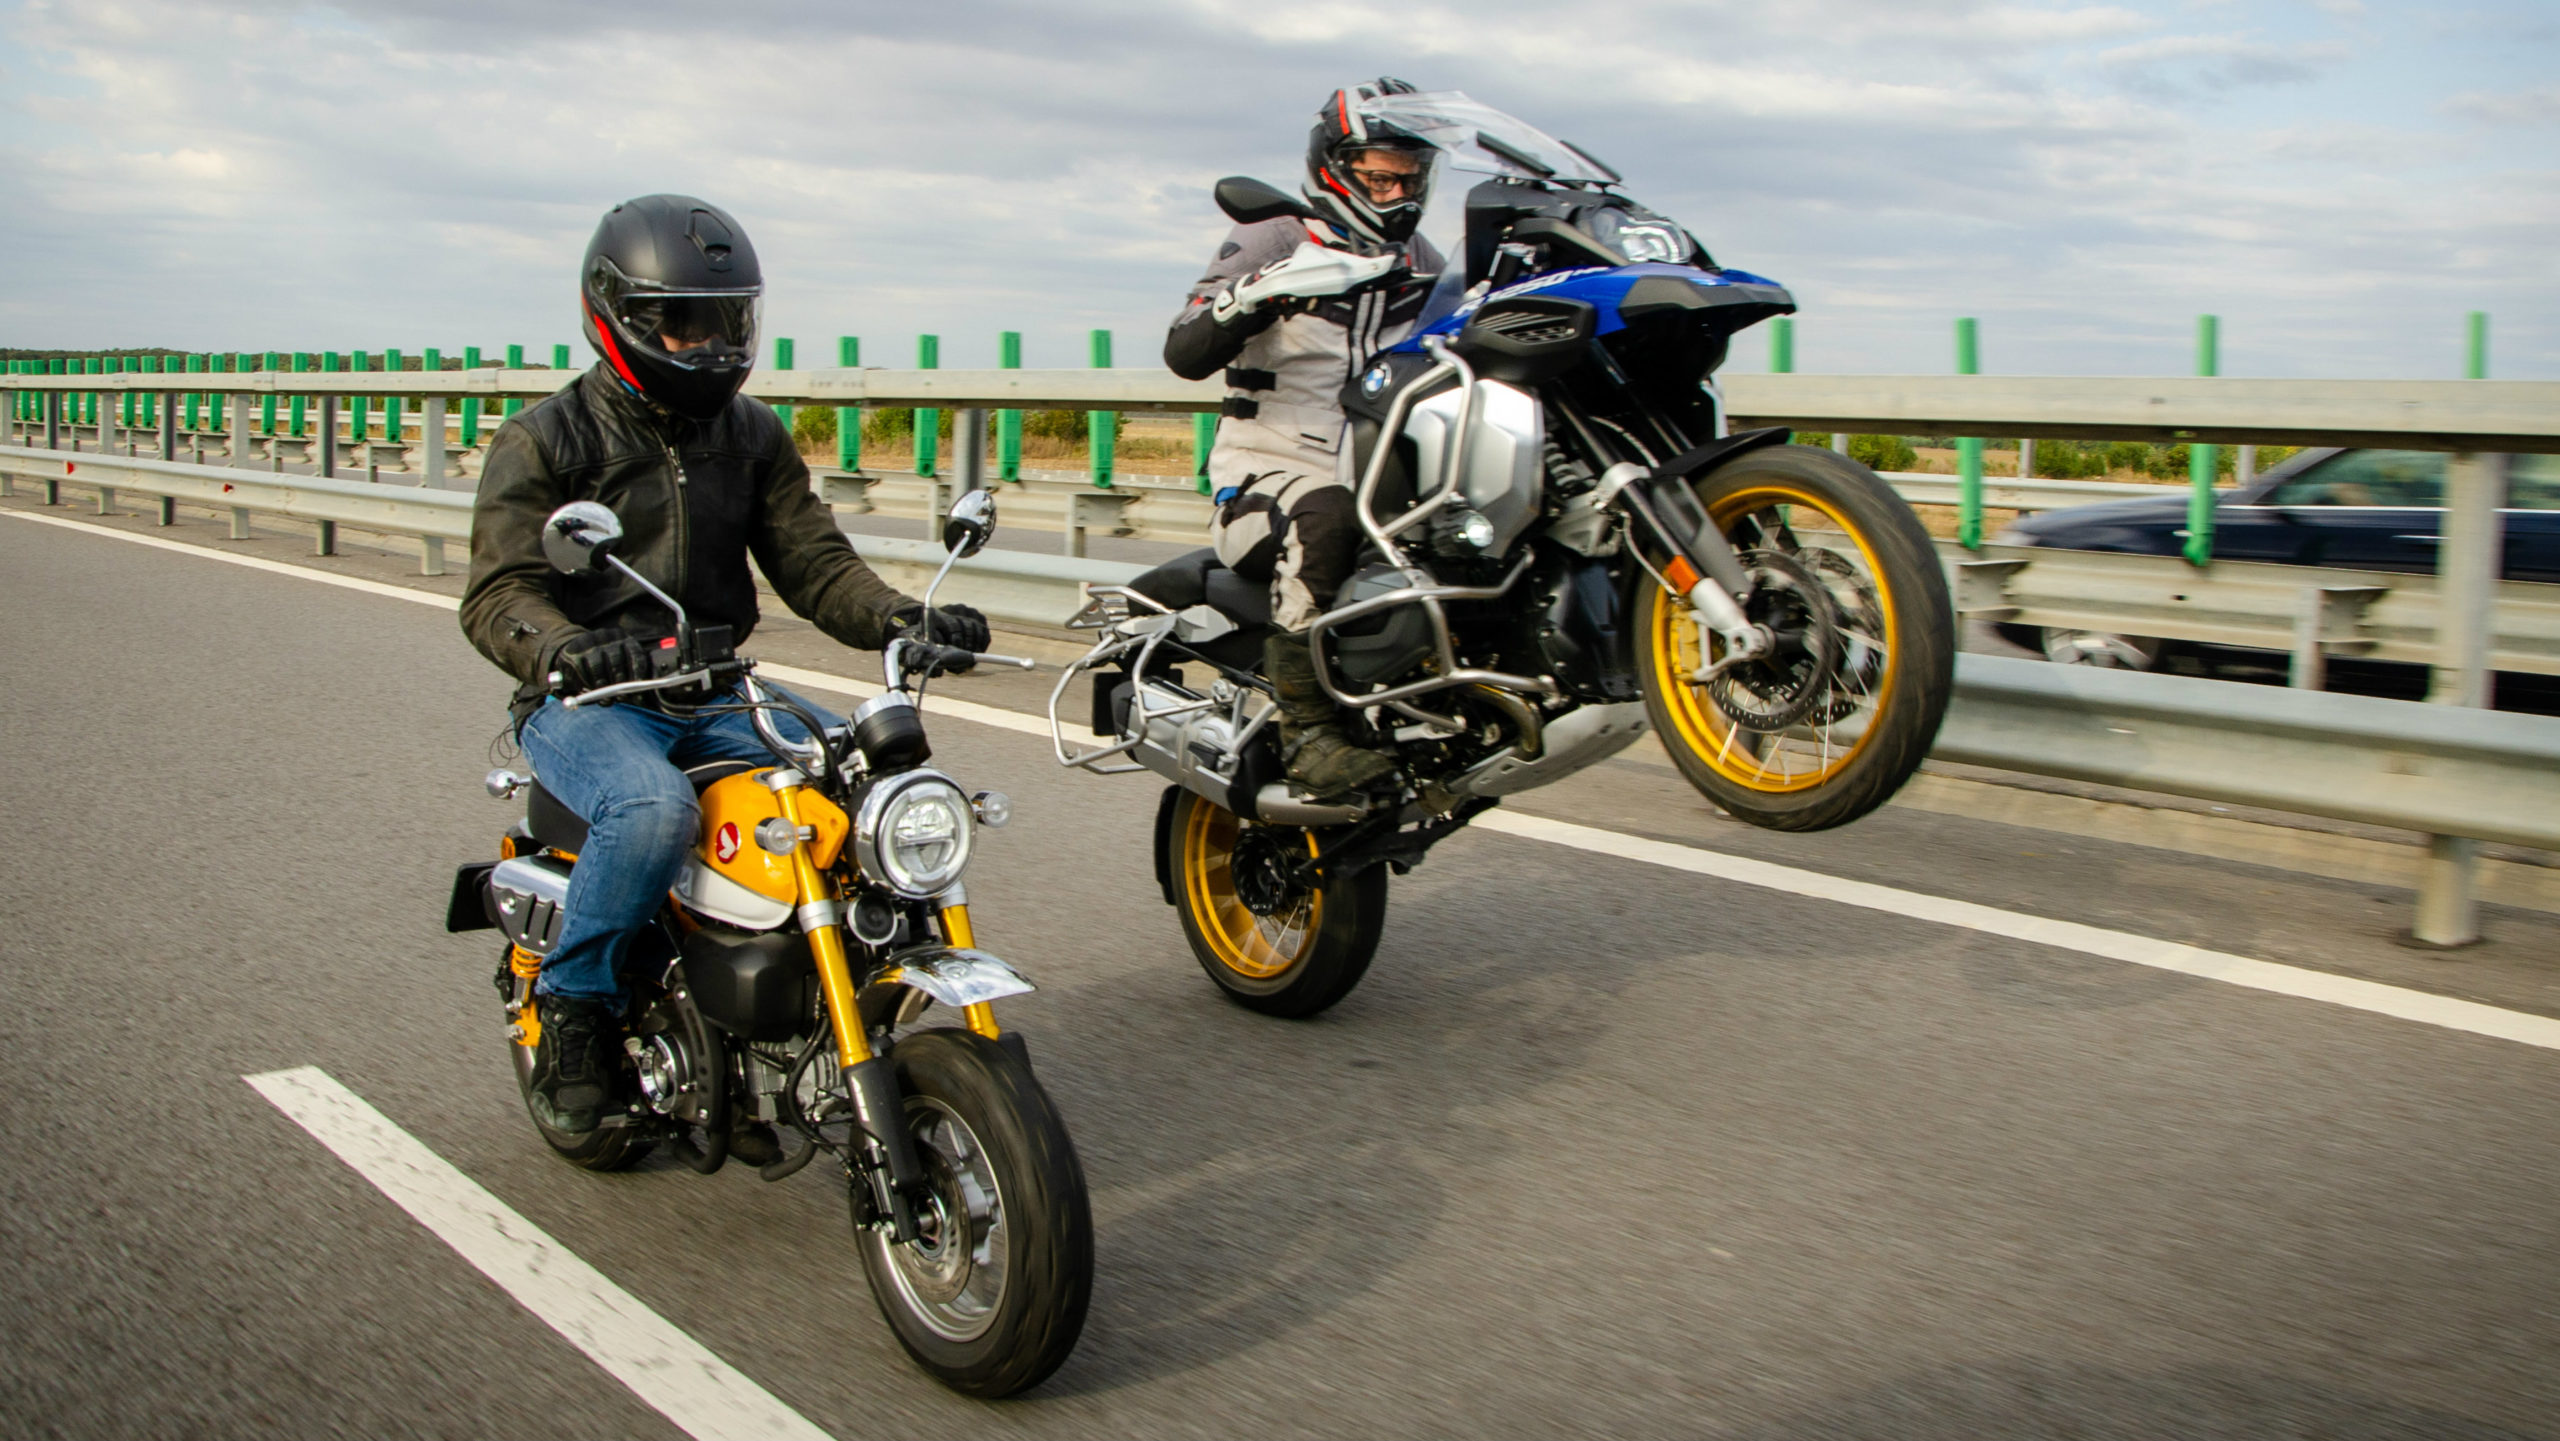 Honda Monkey Vs Bmw R1250gs Adventure Review Drivemag Riders